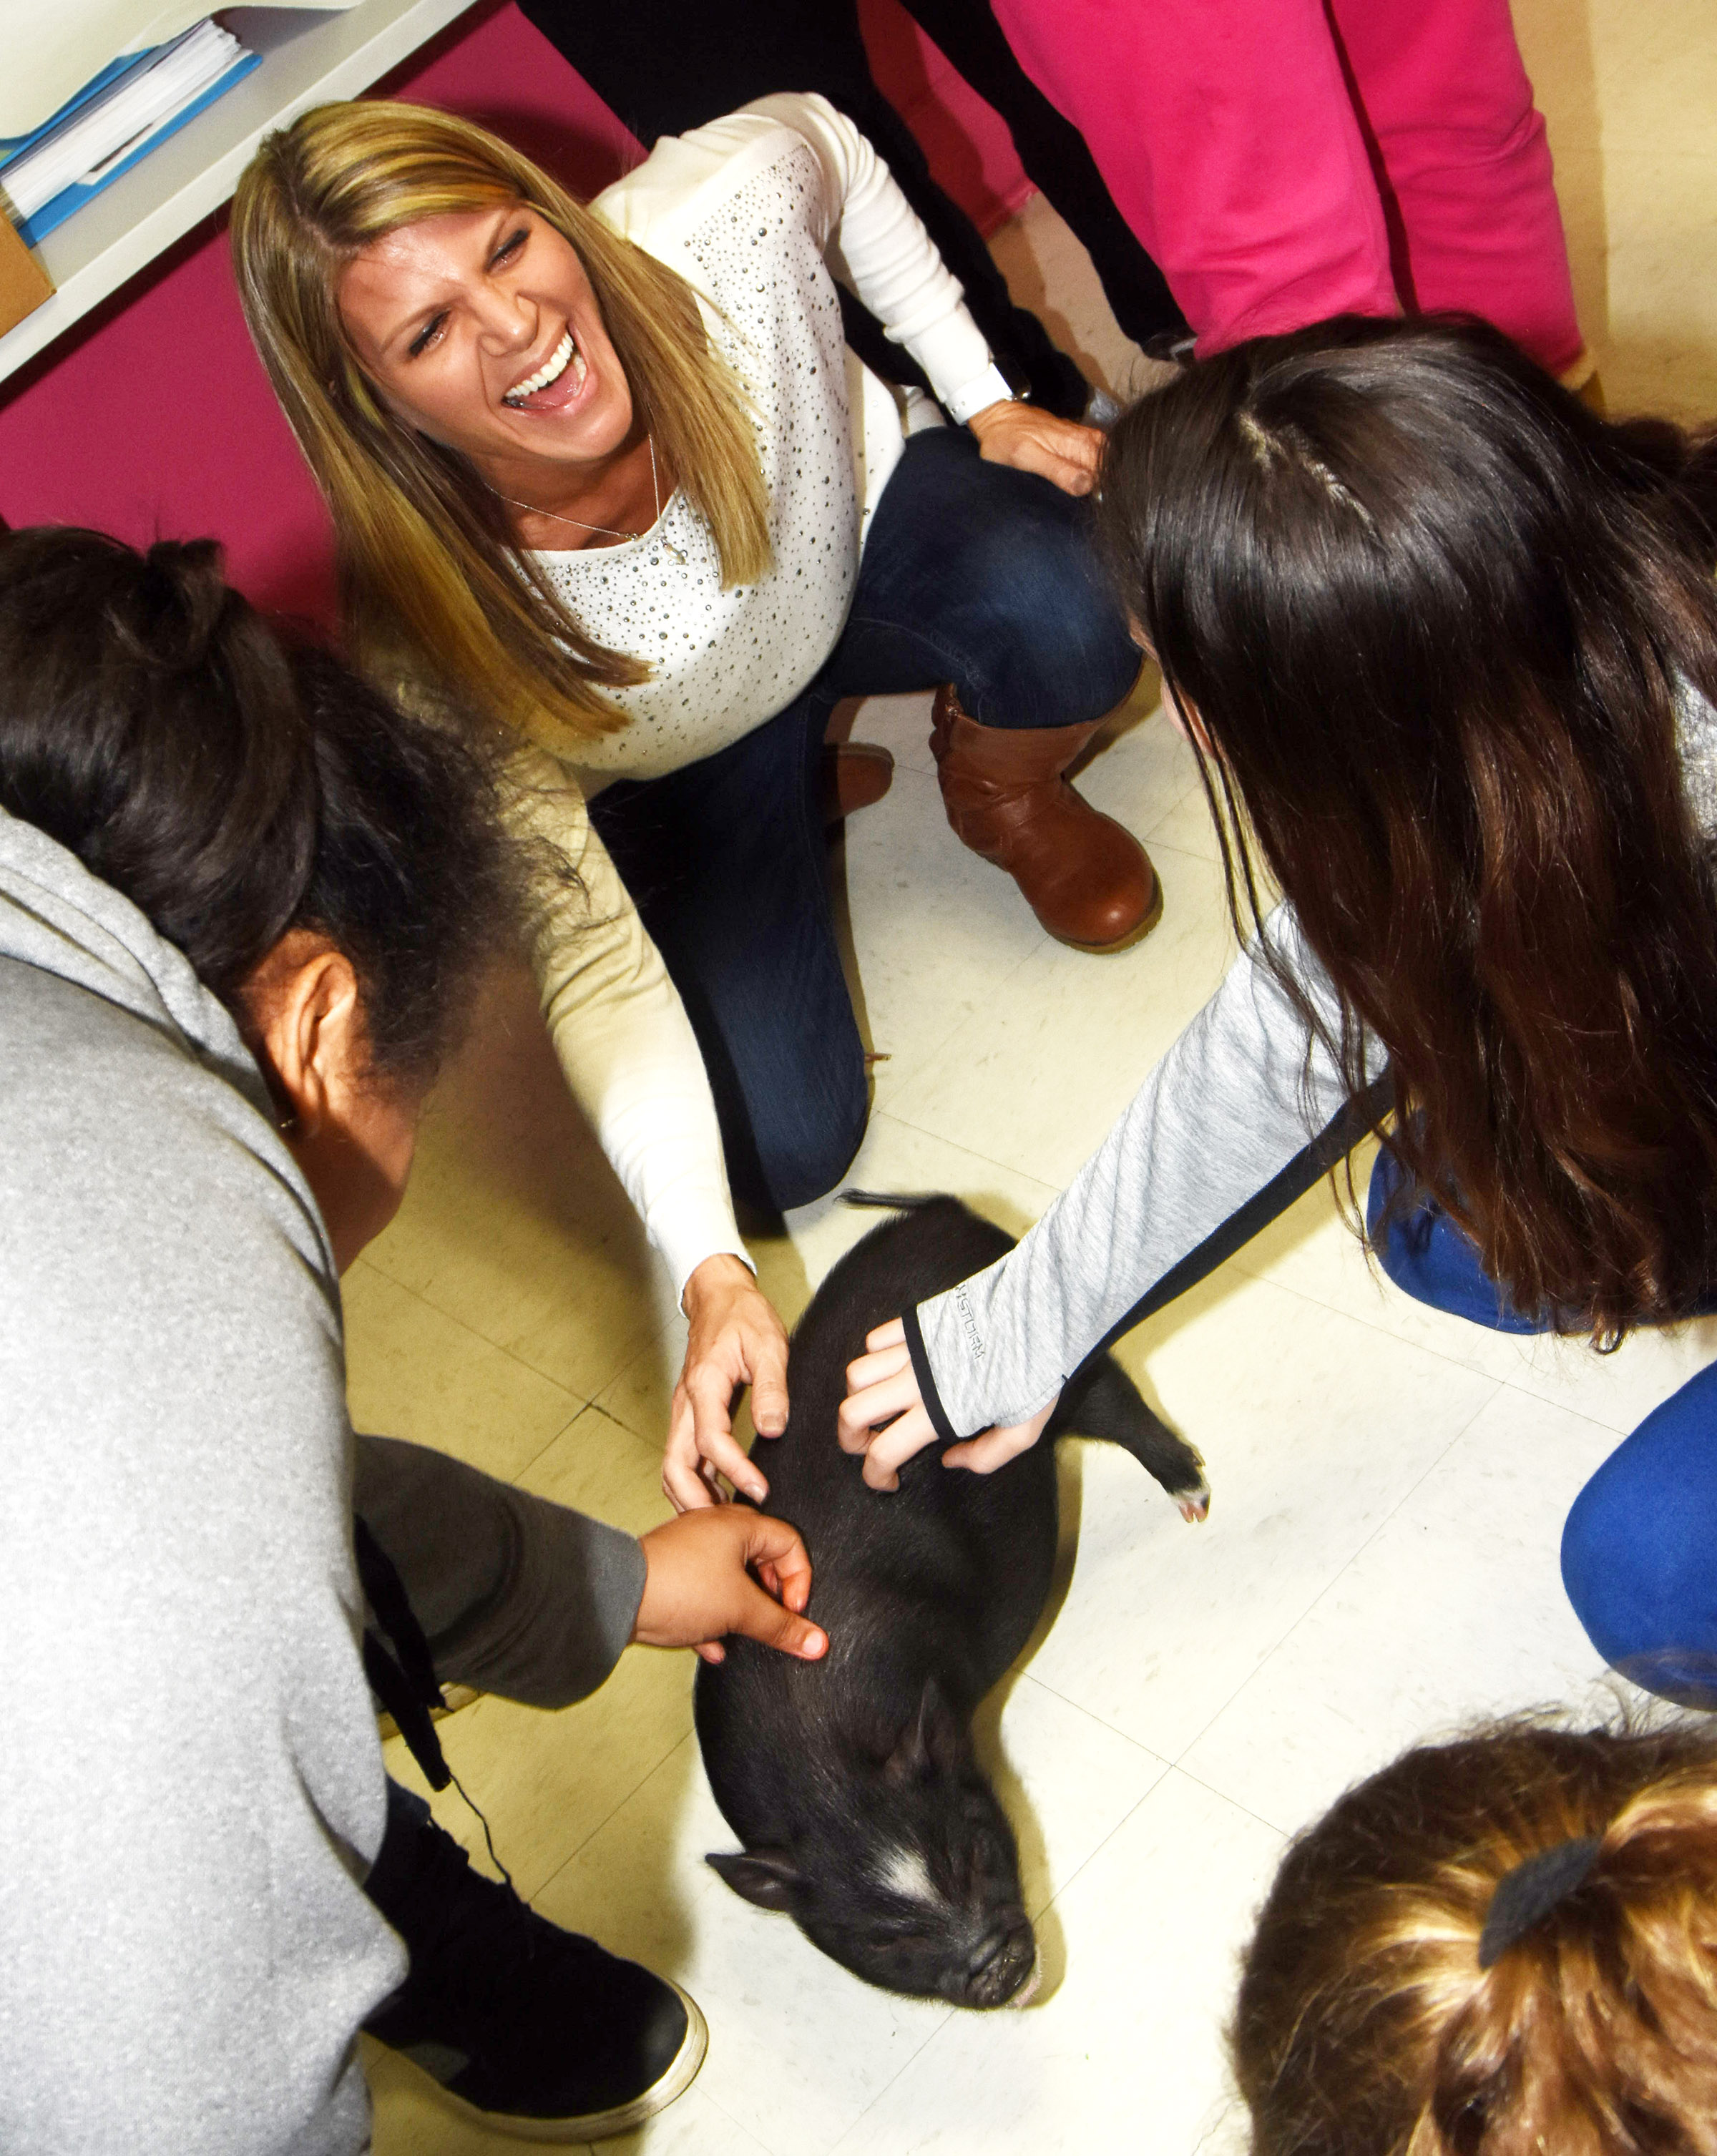 CMS teacher Andrea Gribbins laughs as she and her classmates pet a pig. The pig was brought to school after students studied a reading passage about pigs.